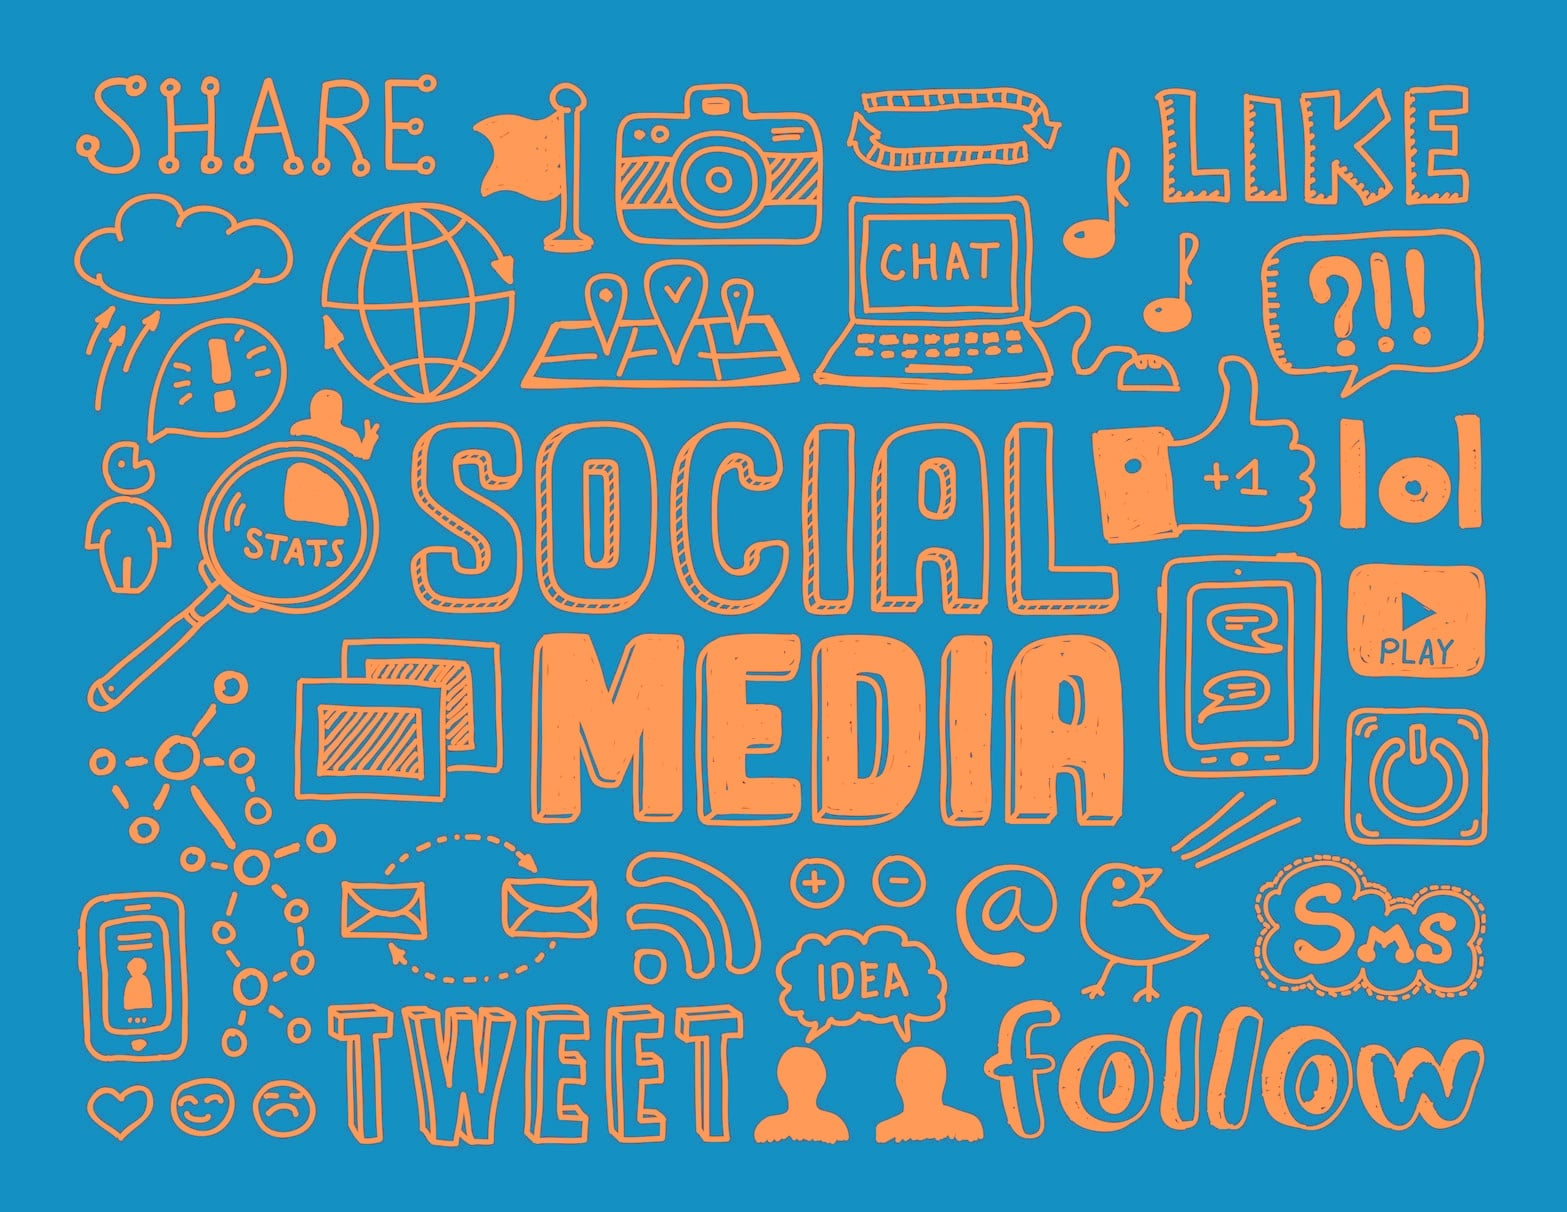 The key to social media advertising lies in your ability to engage audiences.